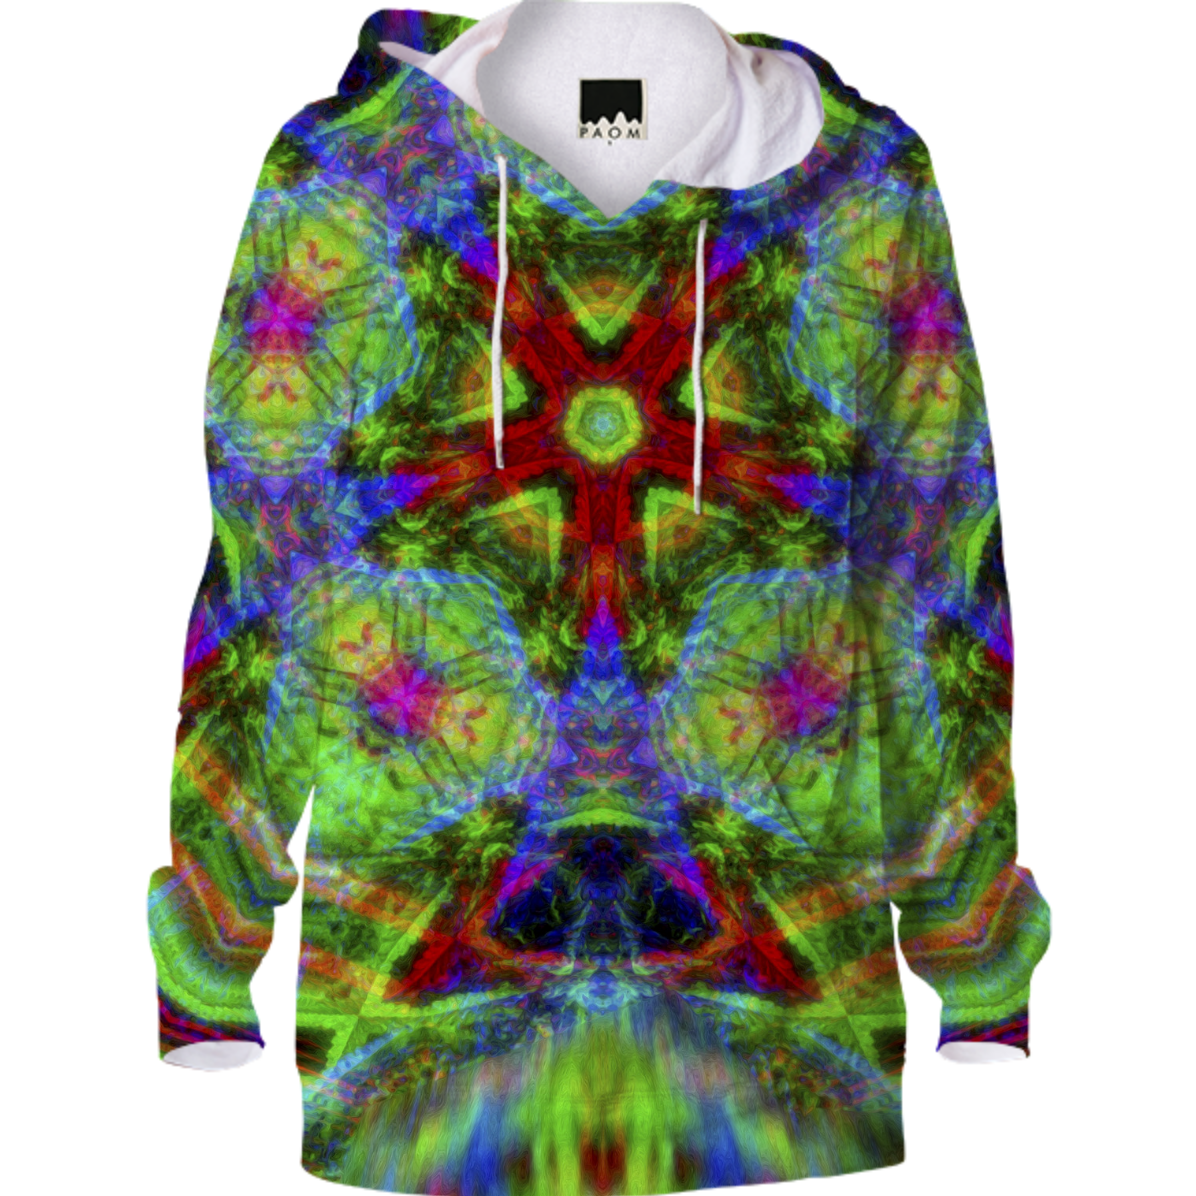 Psychedelic hoodies